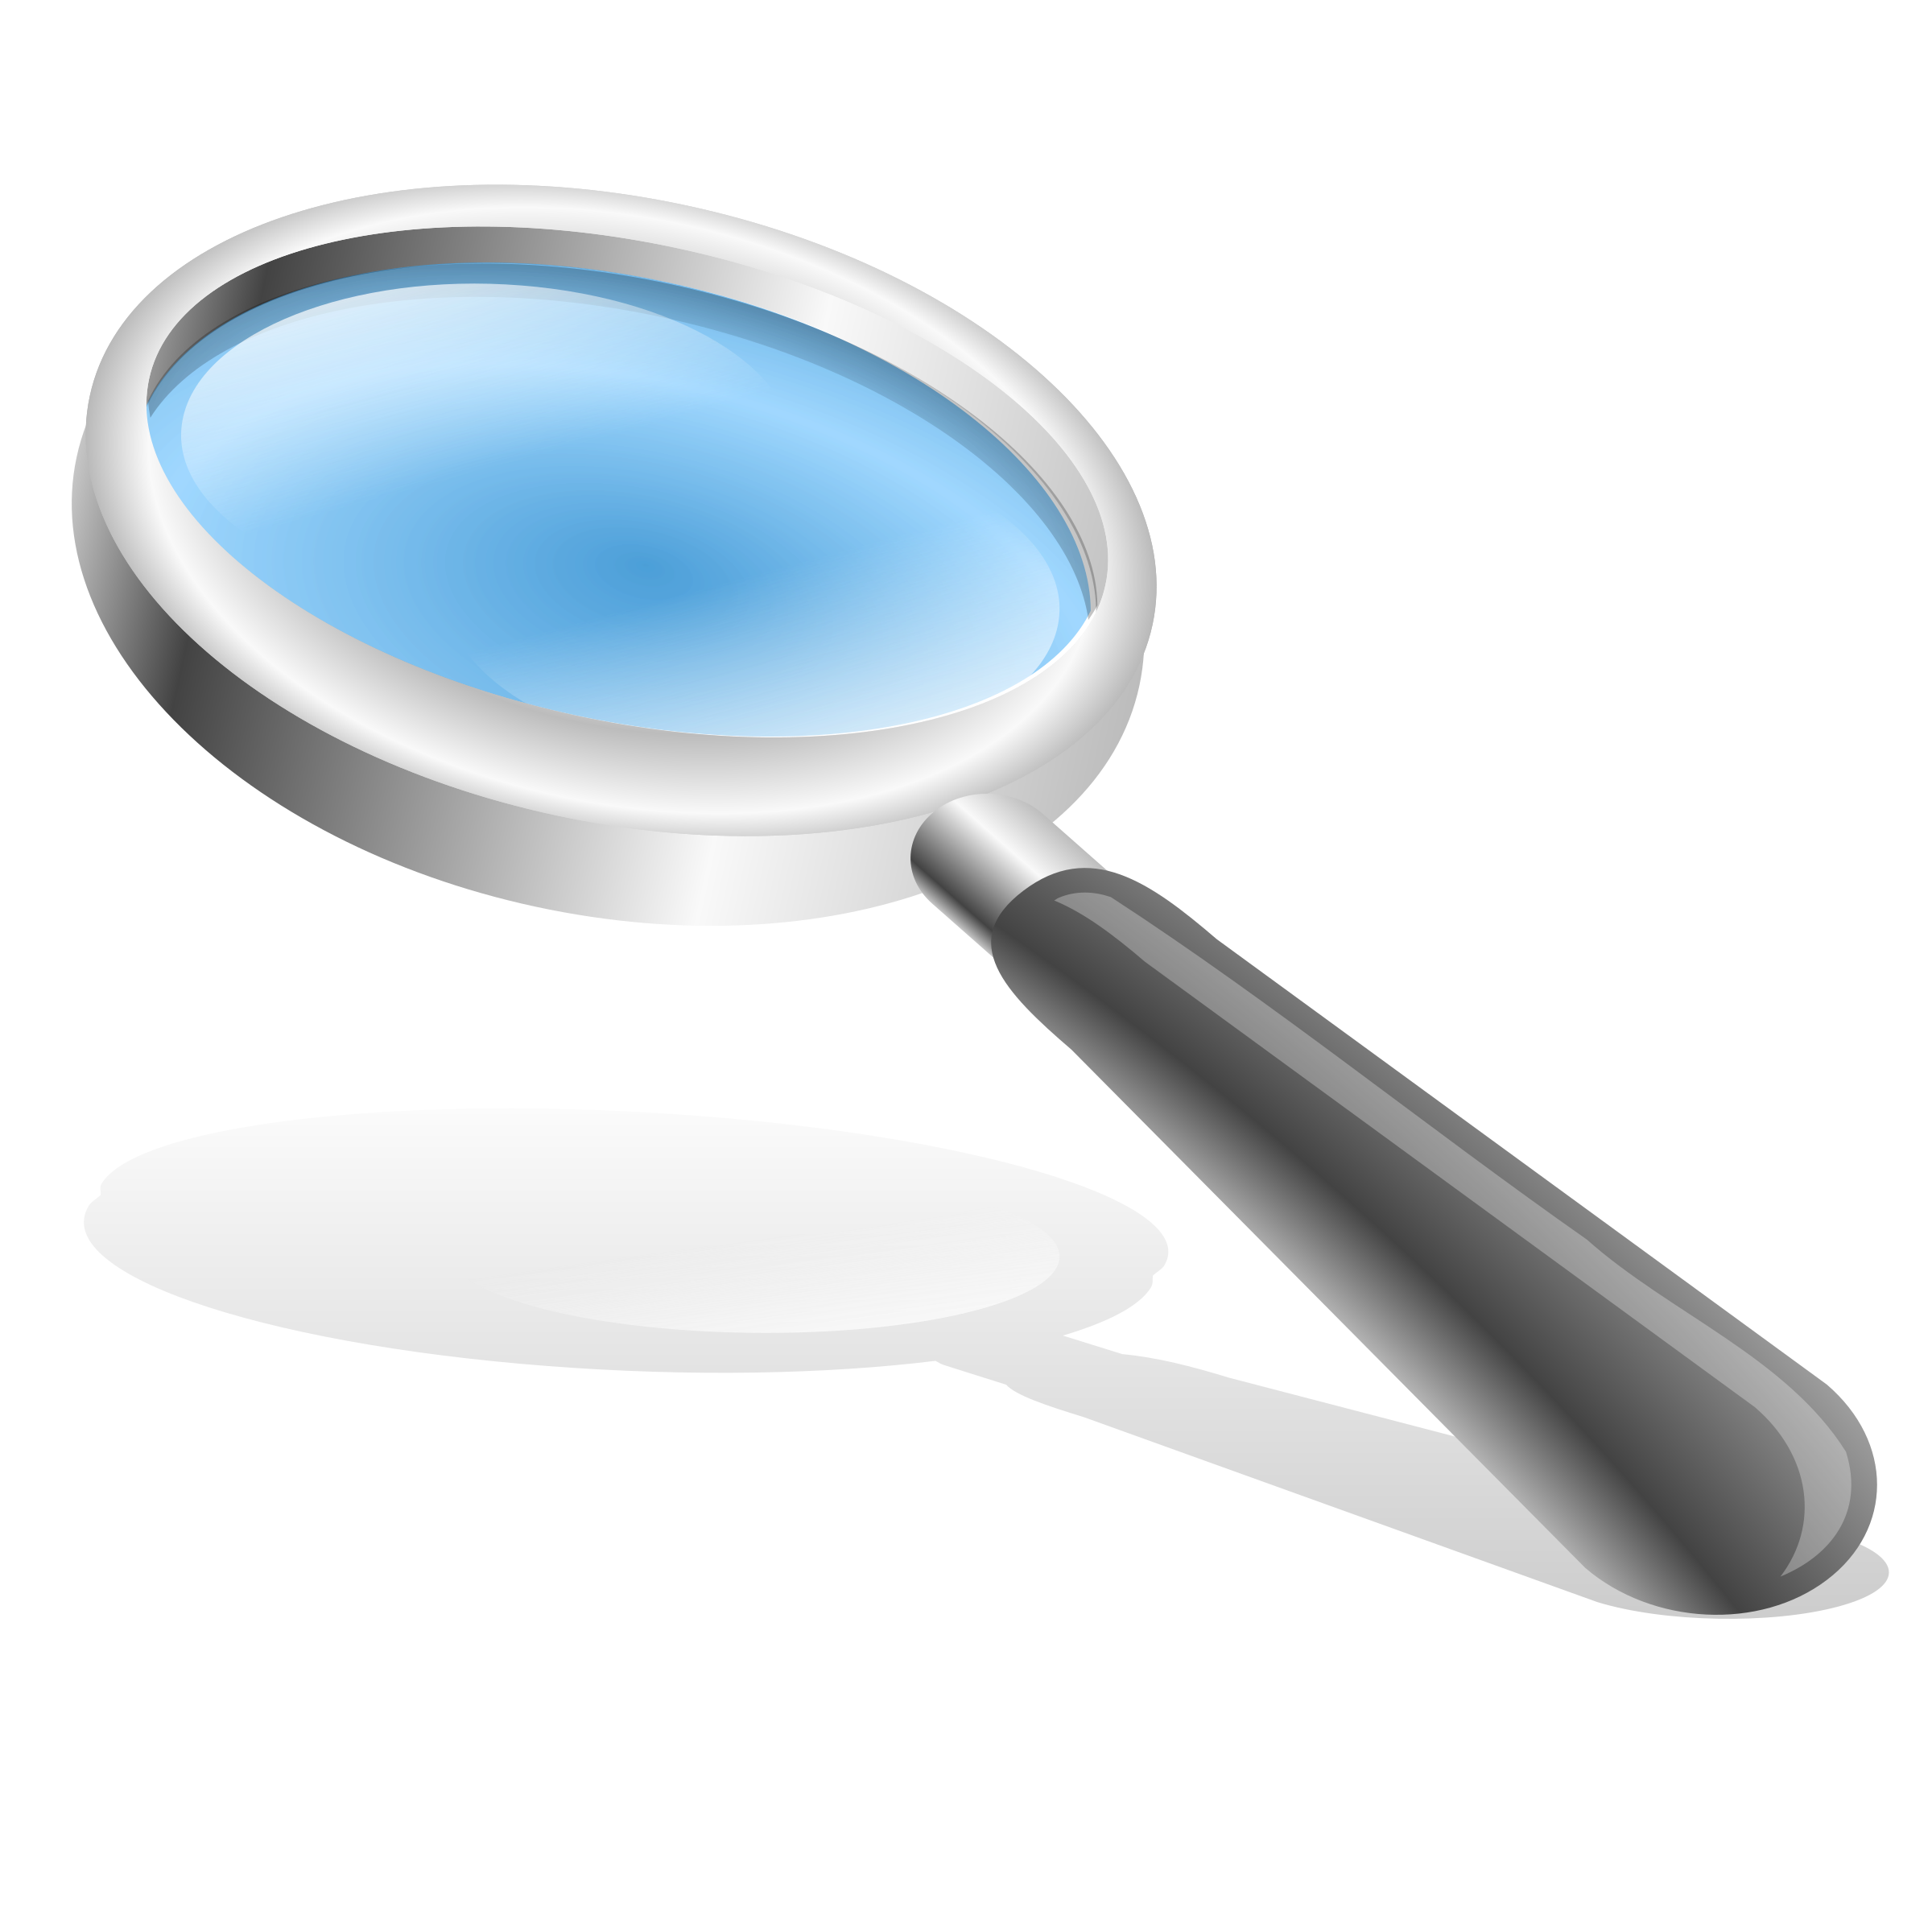 Magnifying glass big image. Focus clipart magnifier